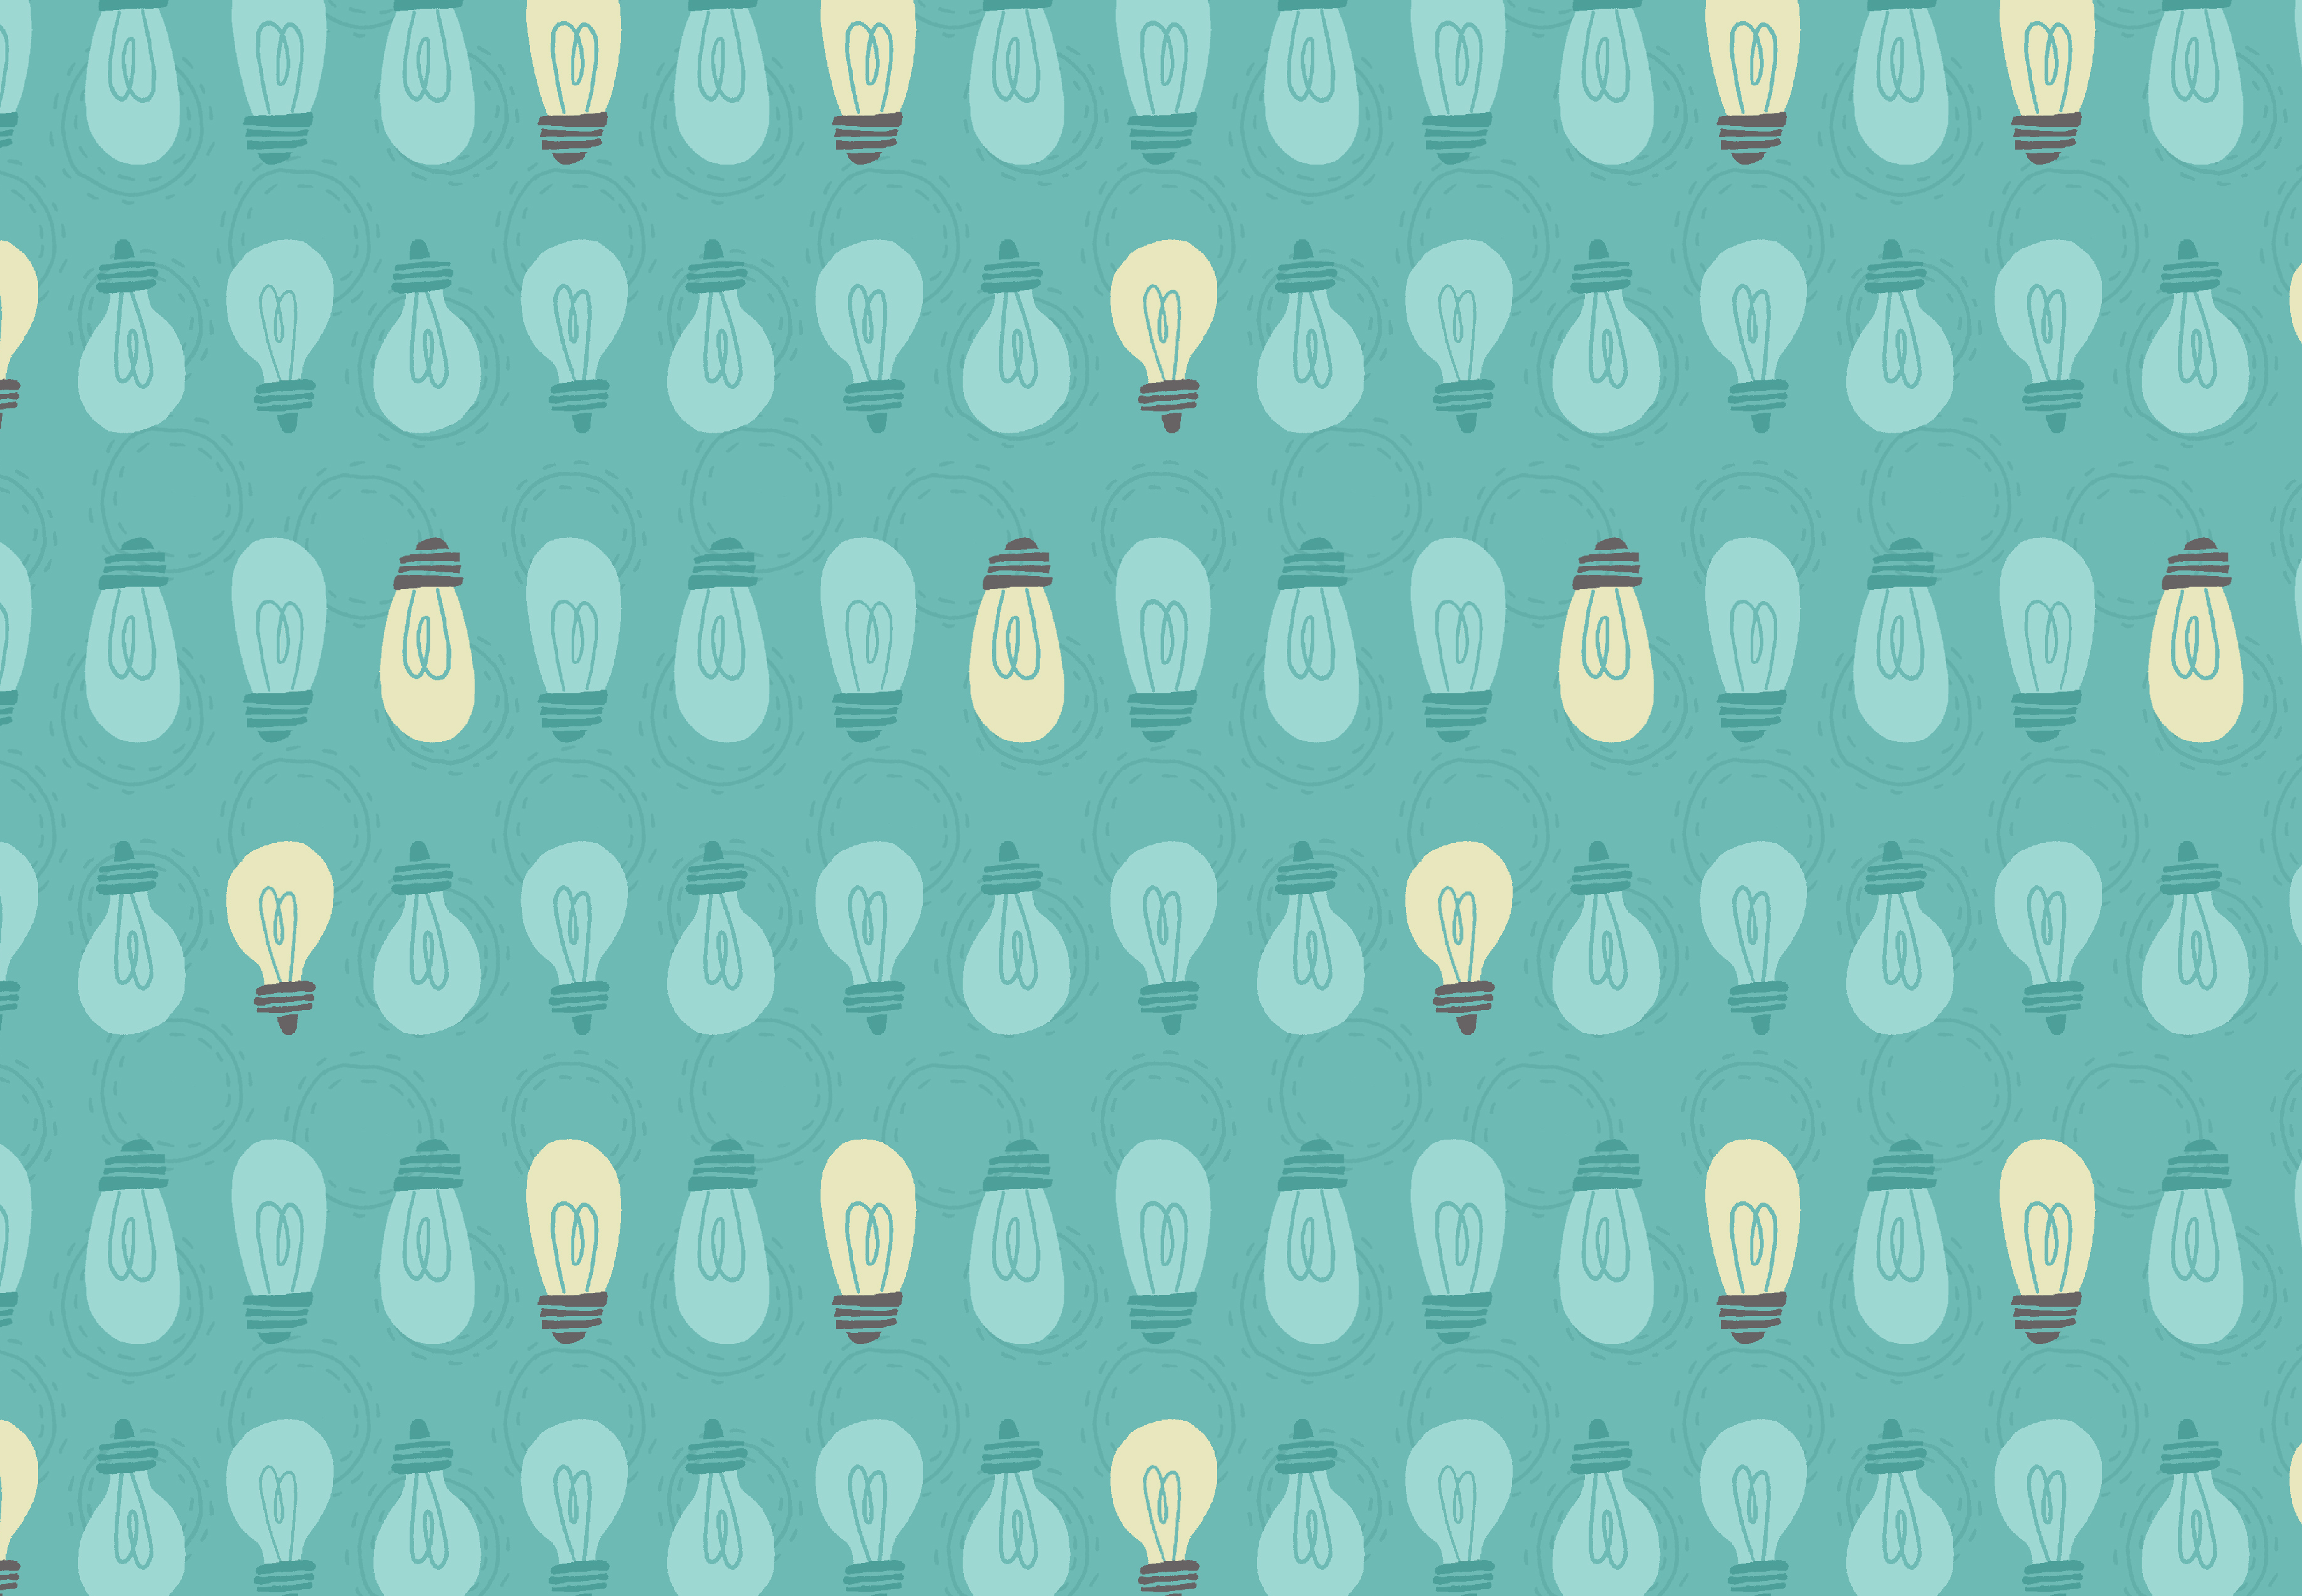 Fun Wallpaper Patterns